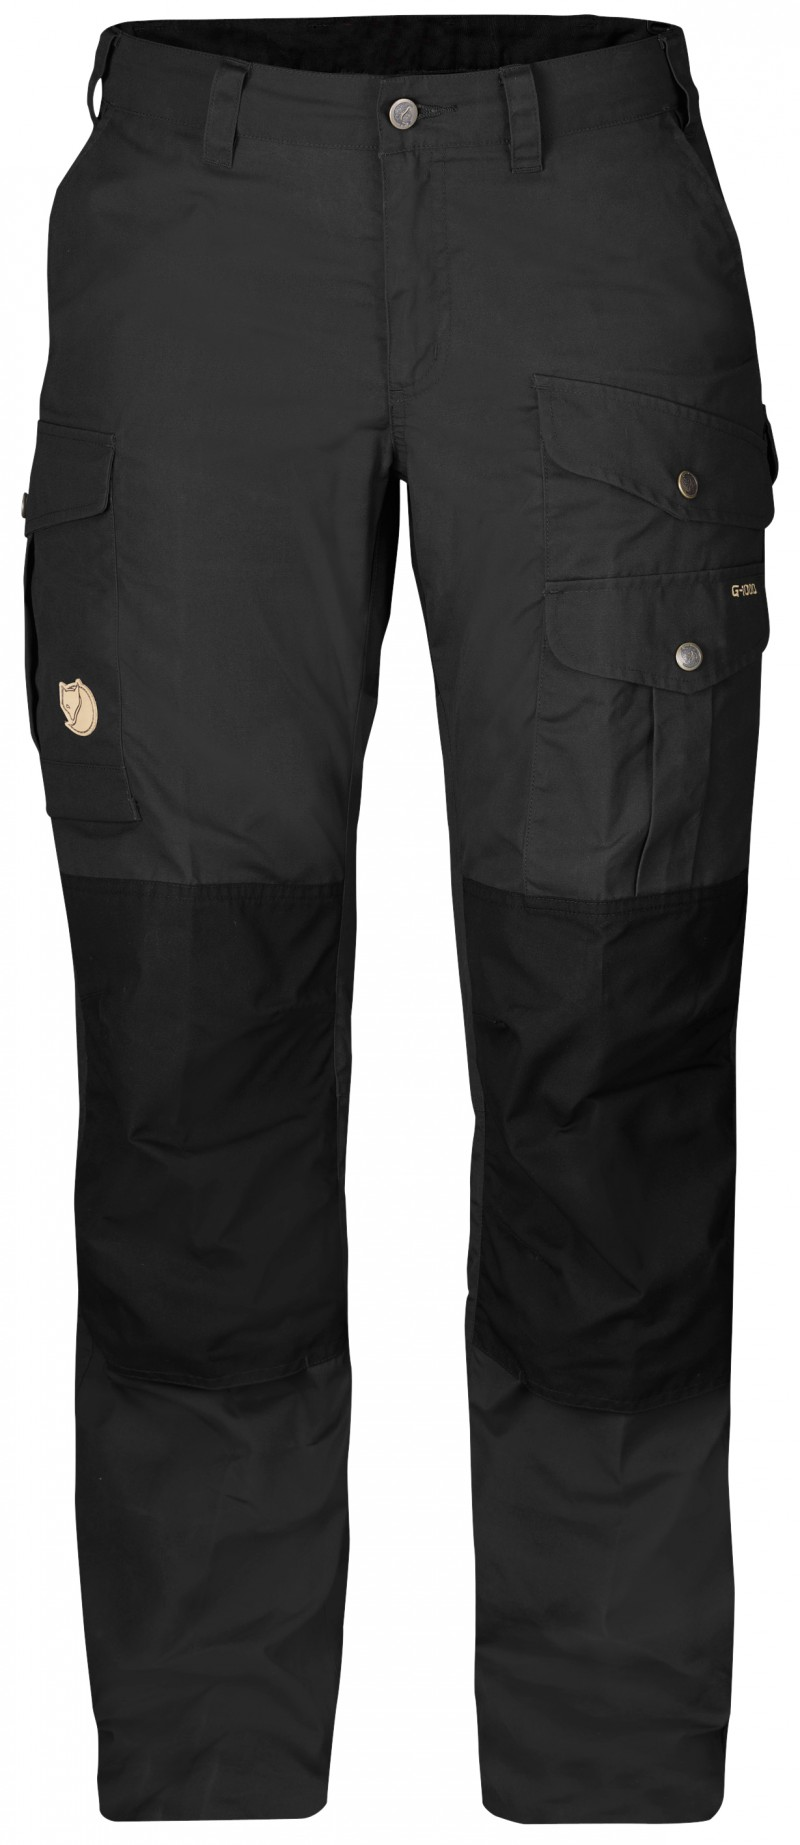 FjallRaven Barents Pro Hydr.Trousers W. Dark Grey-30